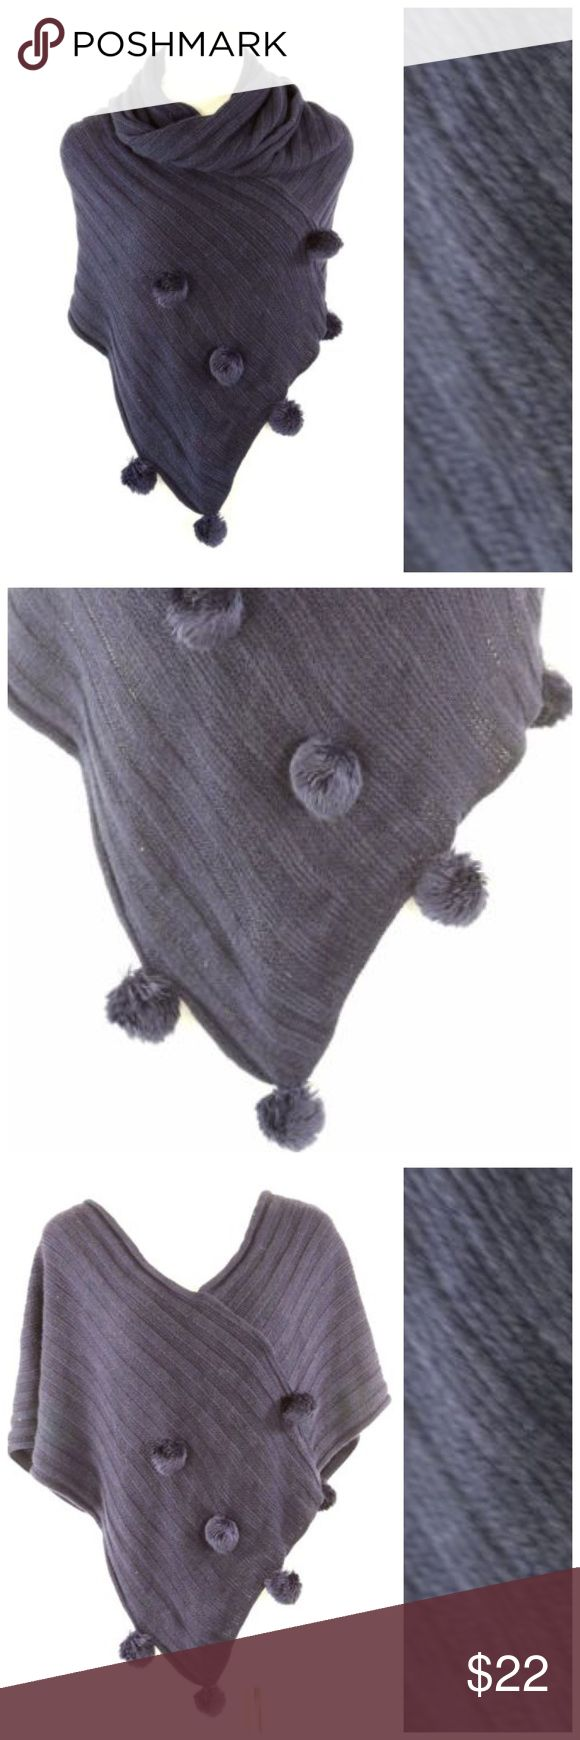 B134 Blue Triangle Pompom Poncho Infinity Scarf ‼️ PRICE FIRM UNLESS BUNDLED WITH OTHER ITEMS FROM MY CLOSET ‼️    Pompom Infinity Scarf  Retail $54  This scarf is unbelievably soft & warm!  Versatile & beautiful navy blue!  Made from the same yarn as your favorite comfy sweater!  Photos do not do justice.  Neckline can be worn around the neck once or twice. Can be worn as a scarf or a poncho. Please check my closet for thousands more scarves, jewelry and designer clothing items.  100%…